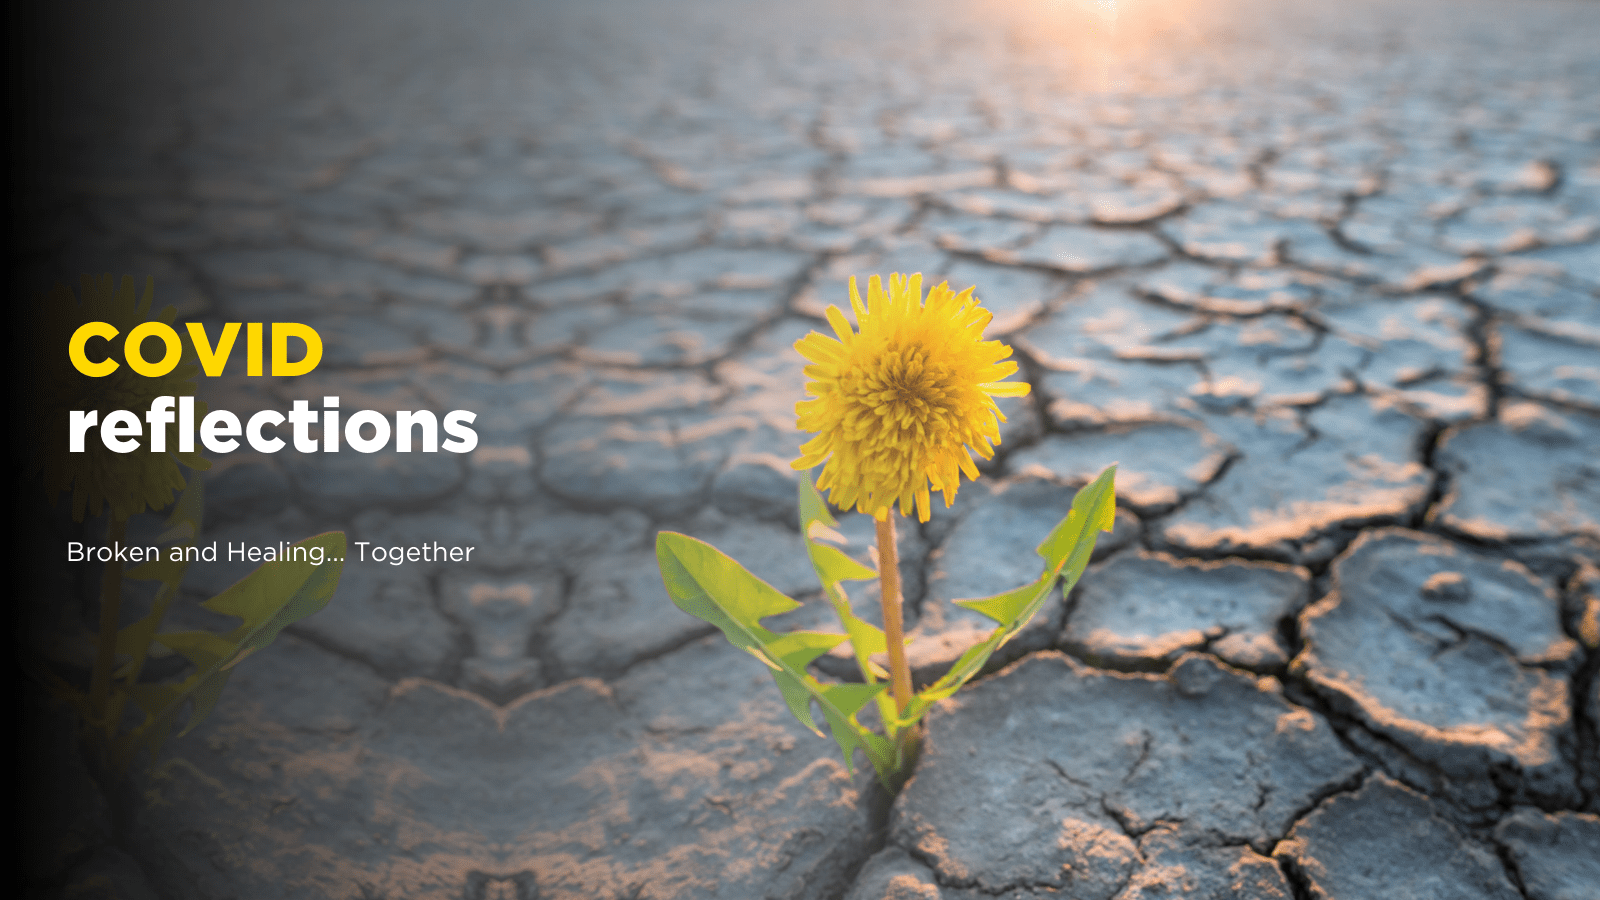 """A dandelion flower breaks through a barren patch of cracked ground. Text reads """"COVID reflections - Broken and Healing together."""""""